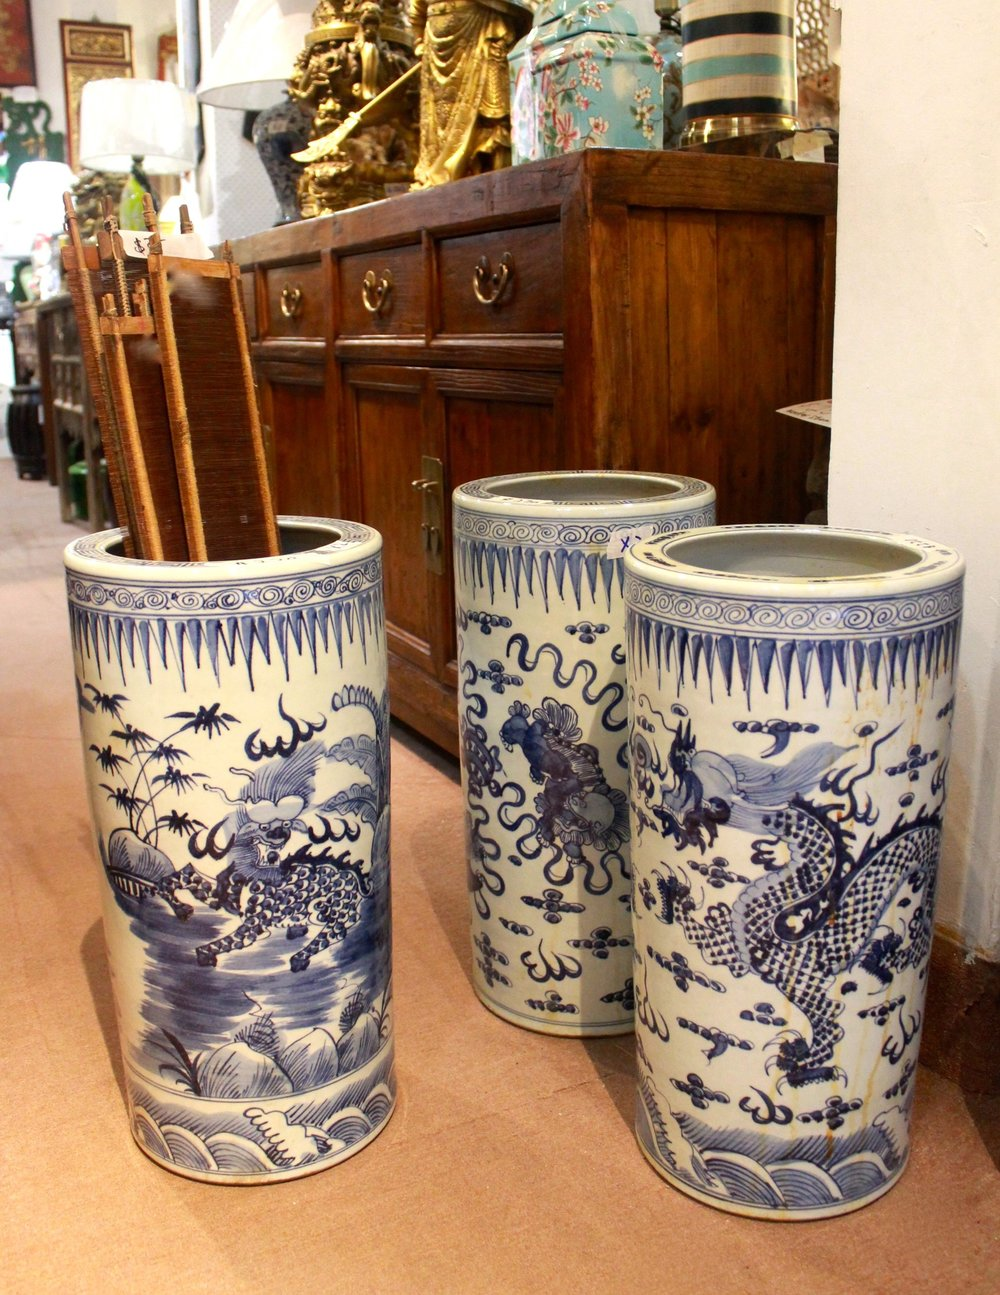 Porcelain umbrella stands